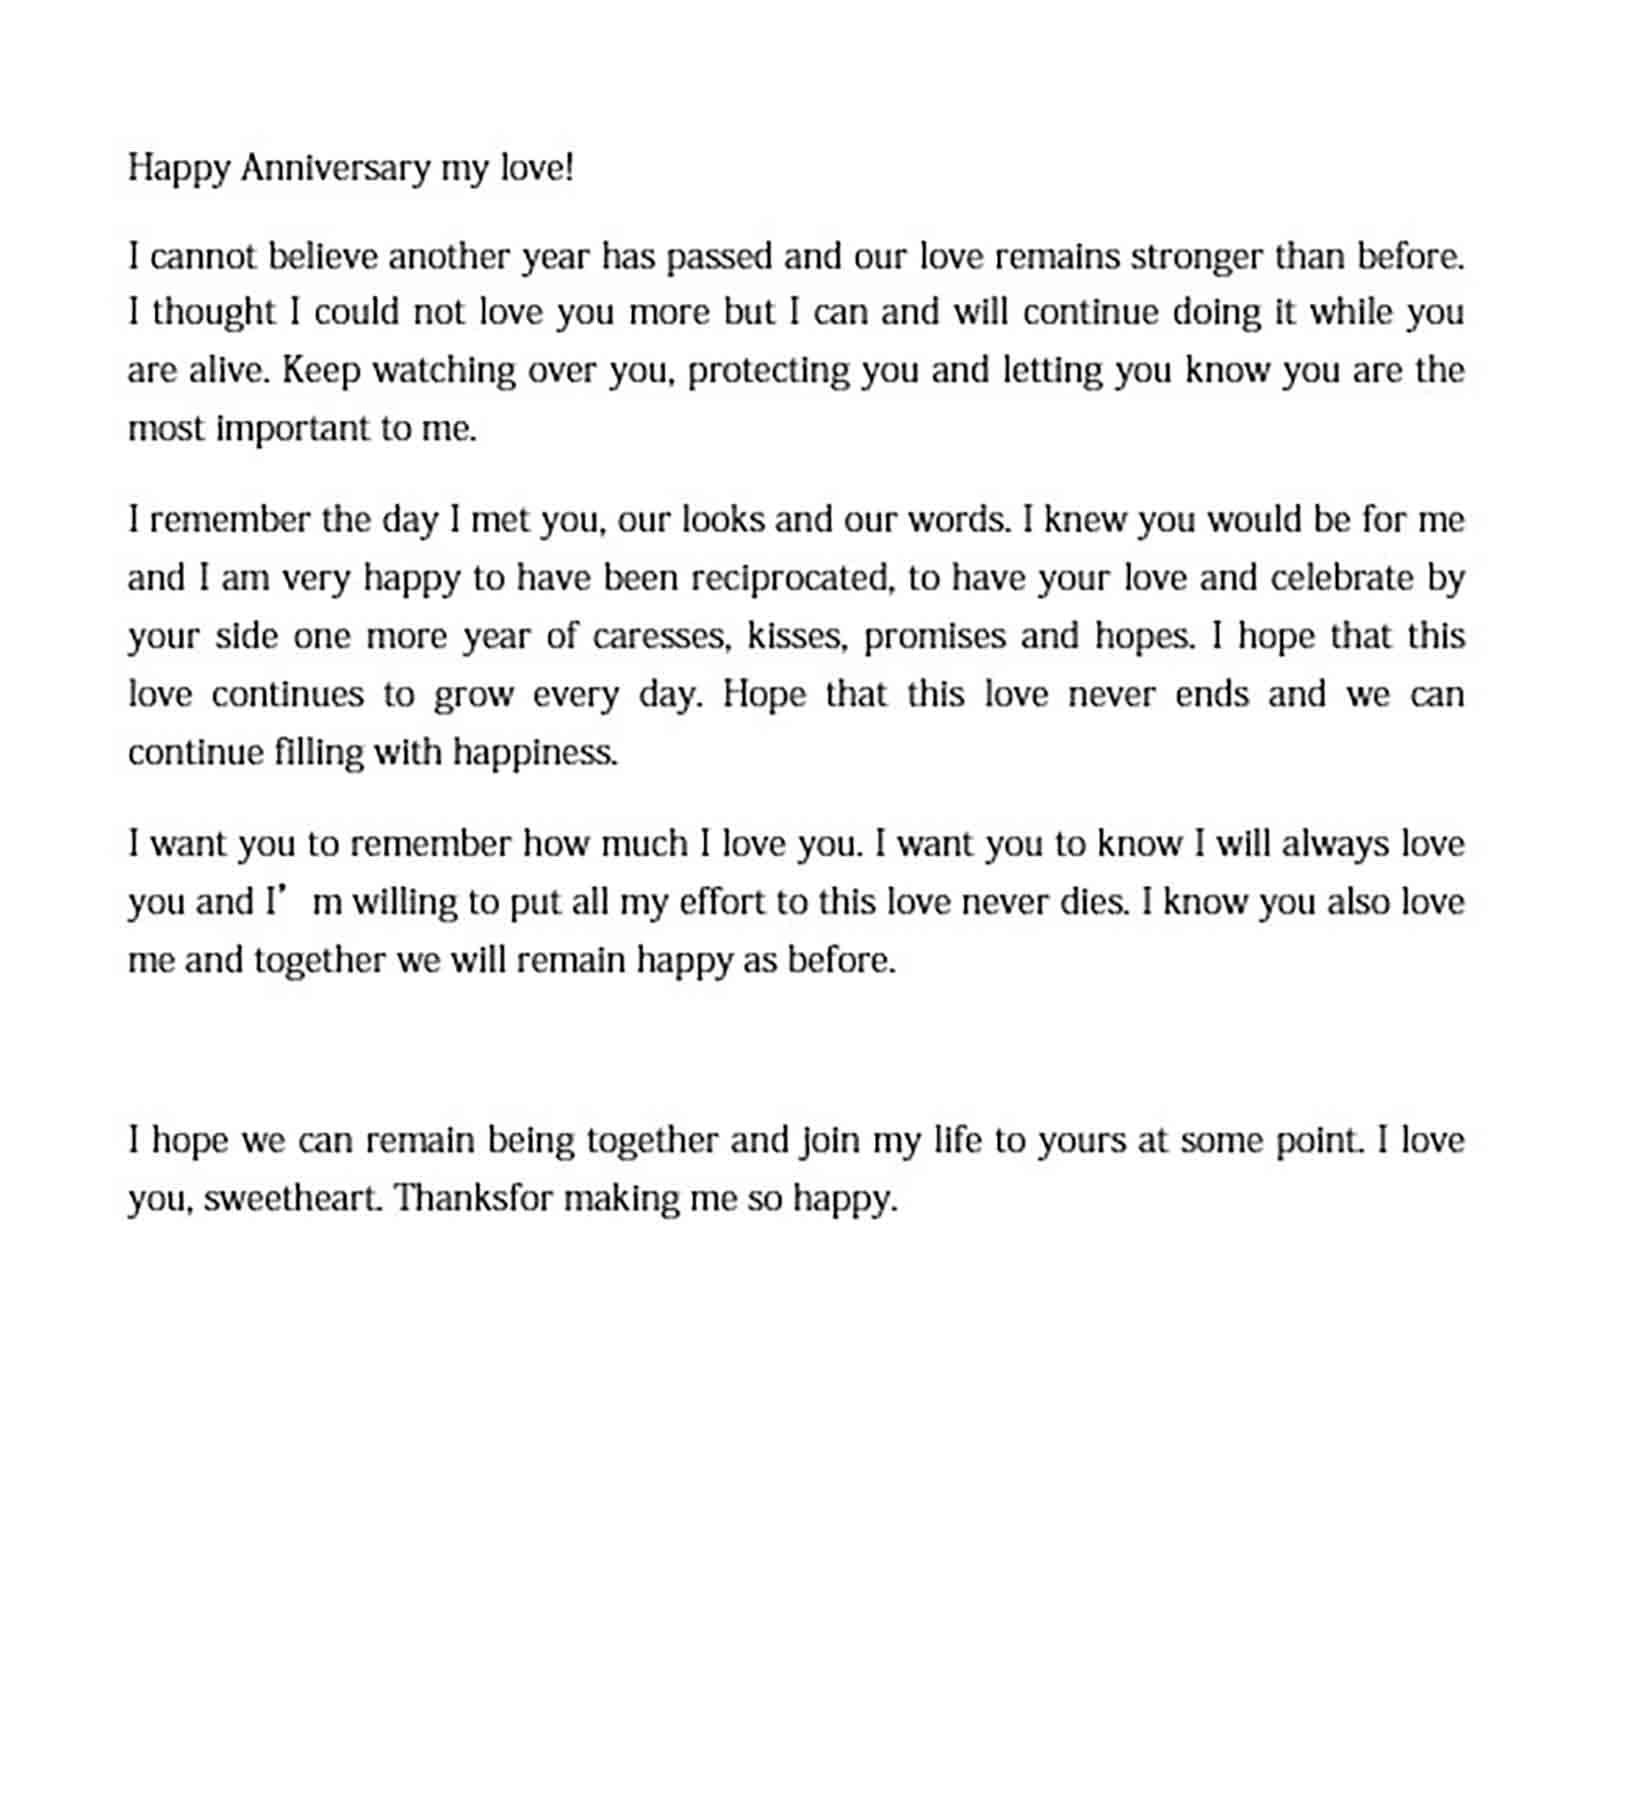 Samples Of Love Letters To Boyfriend And How To Make The Reader